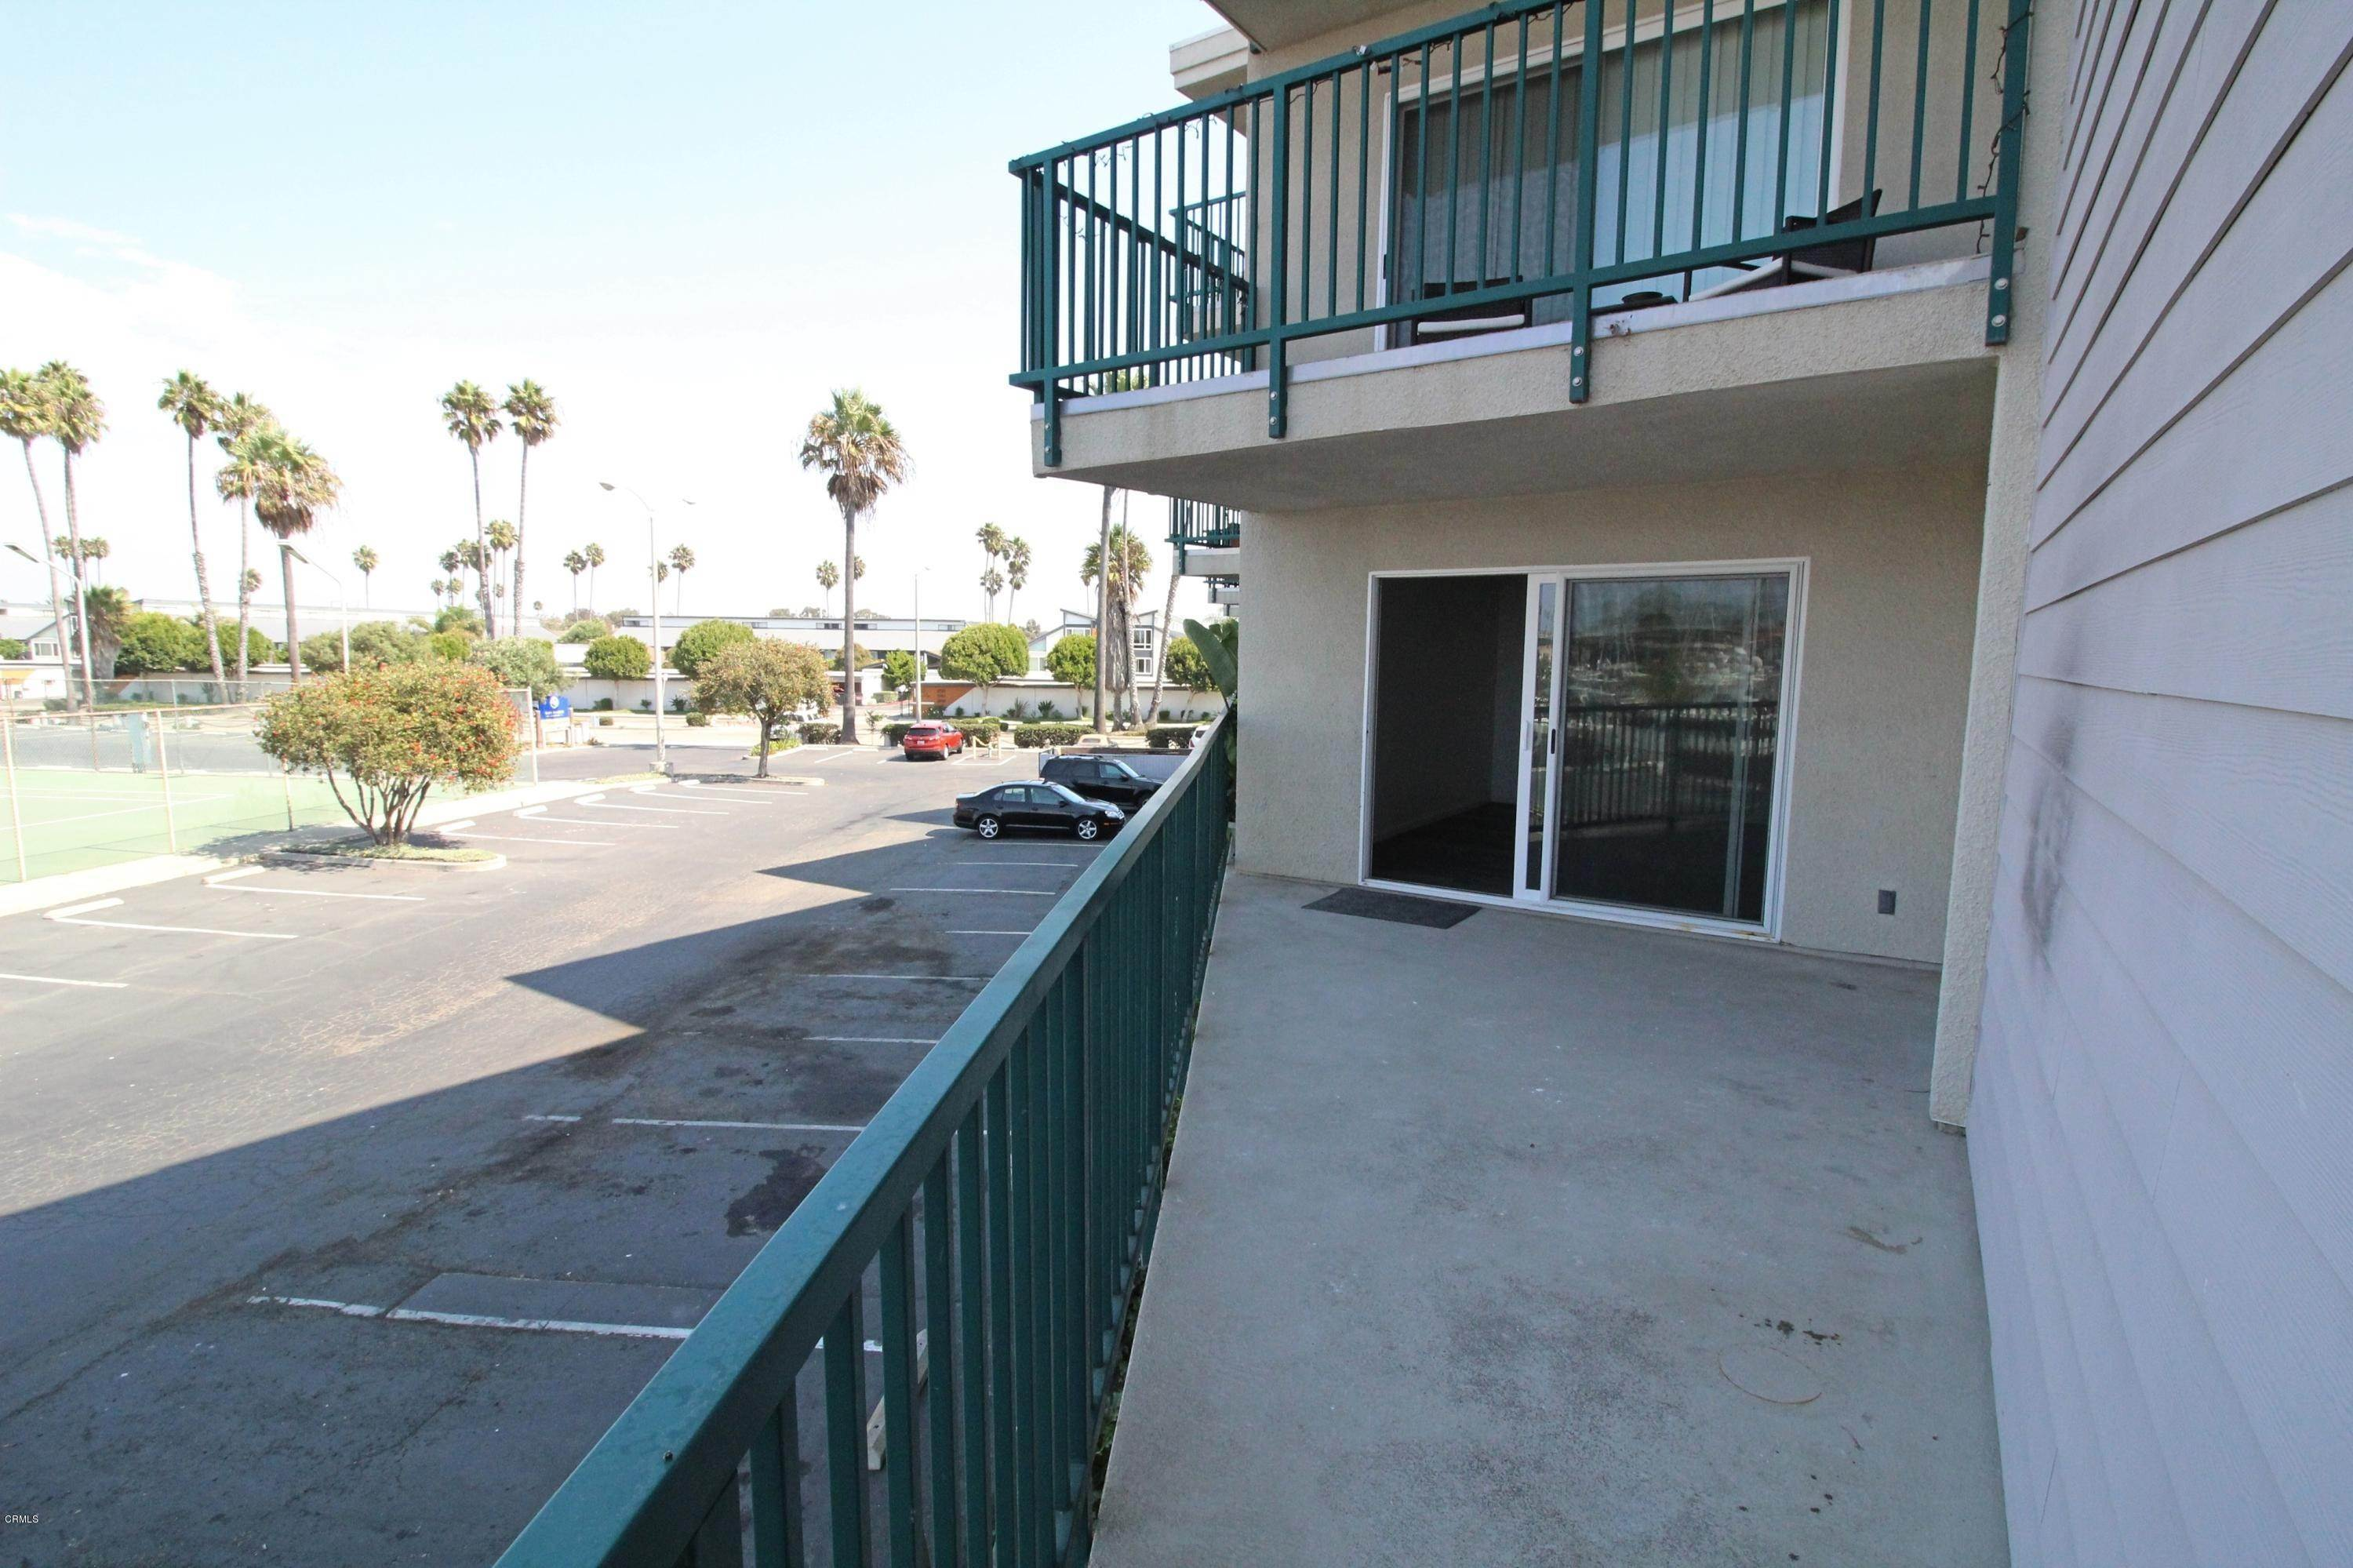 11. Condominiums at 2901 Peninsula Road #137 2901 Peninsula Road Oxnard, California 93035 United States